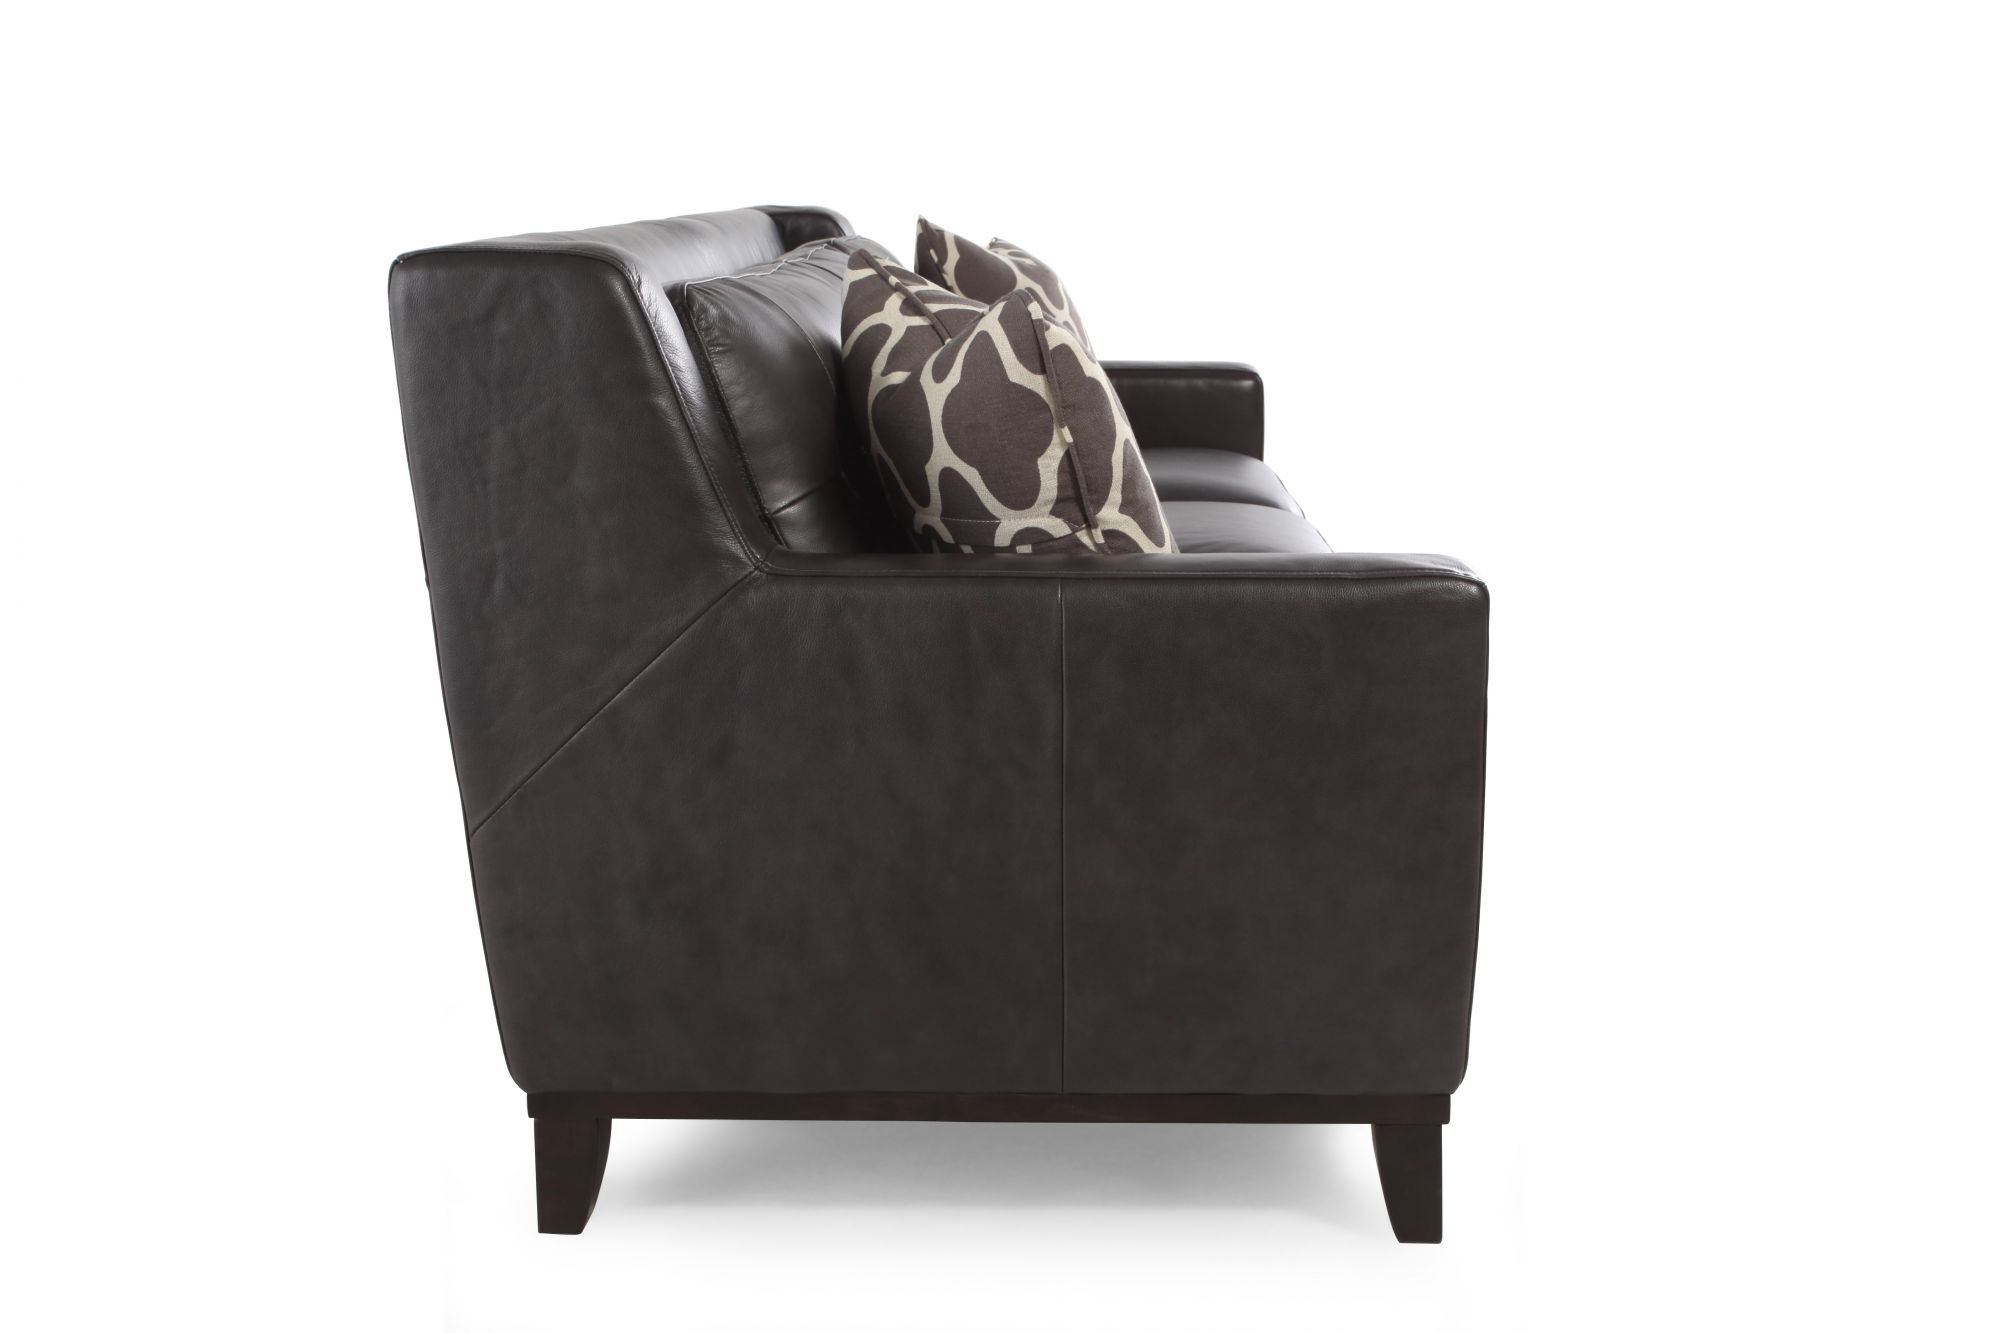 Button Tufted Leather 80 Sofa In Dark Gray Mathis Brothers Furniture